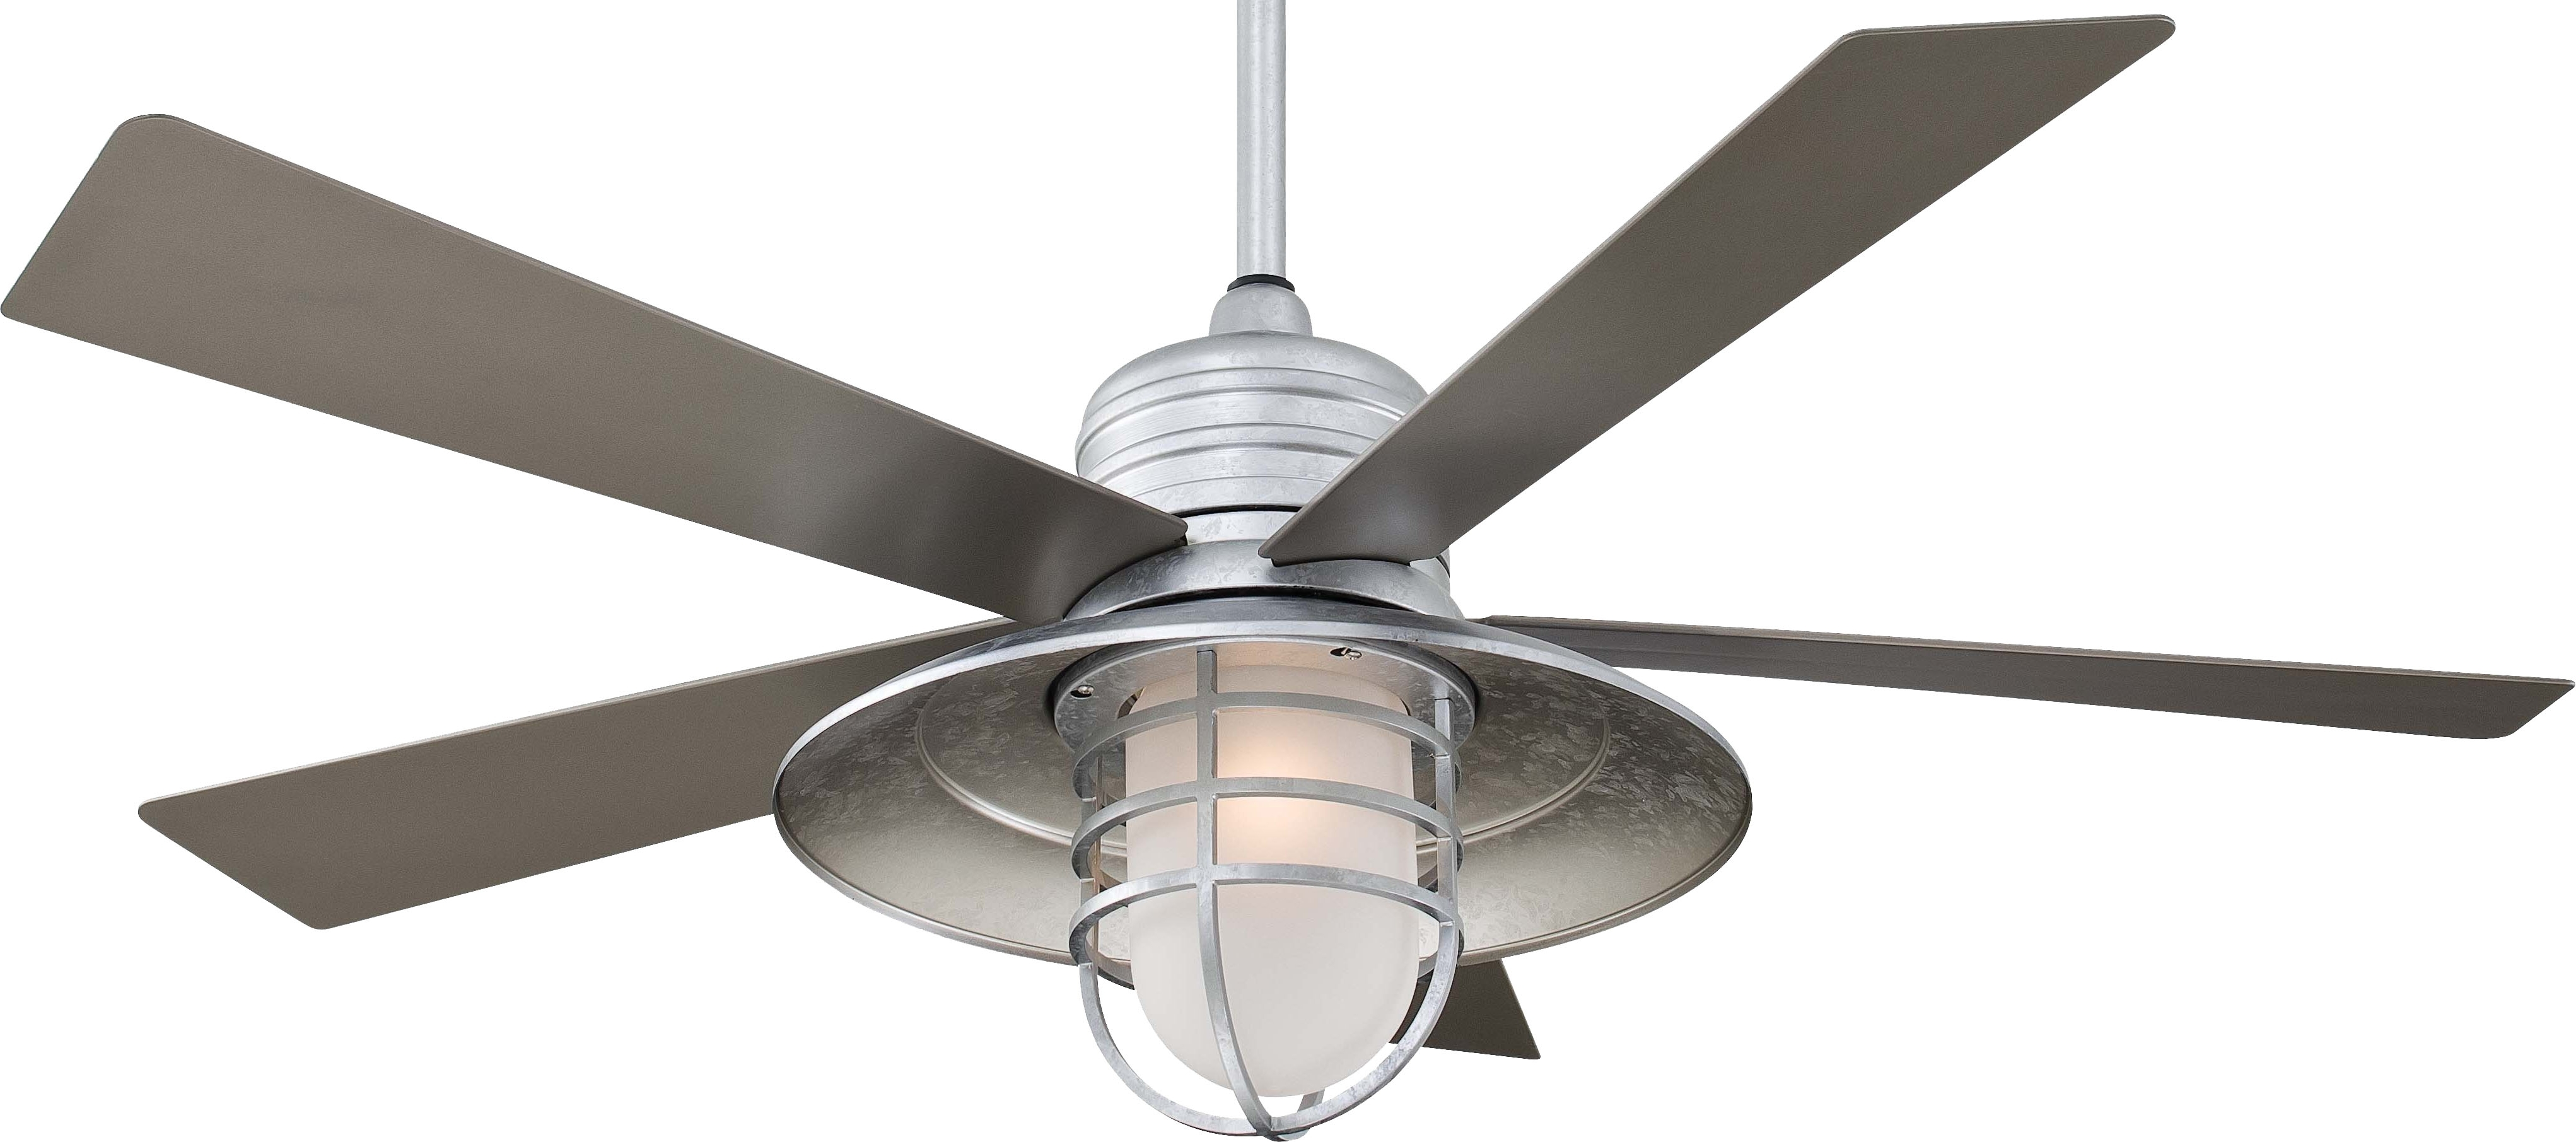 Most Recent Mid Century Galvanized Ceiling Fan Light Kit Modern Tray Definition Inside Outdoor Ceiling Fans With Galvanized Blades (View 6 of 20)